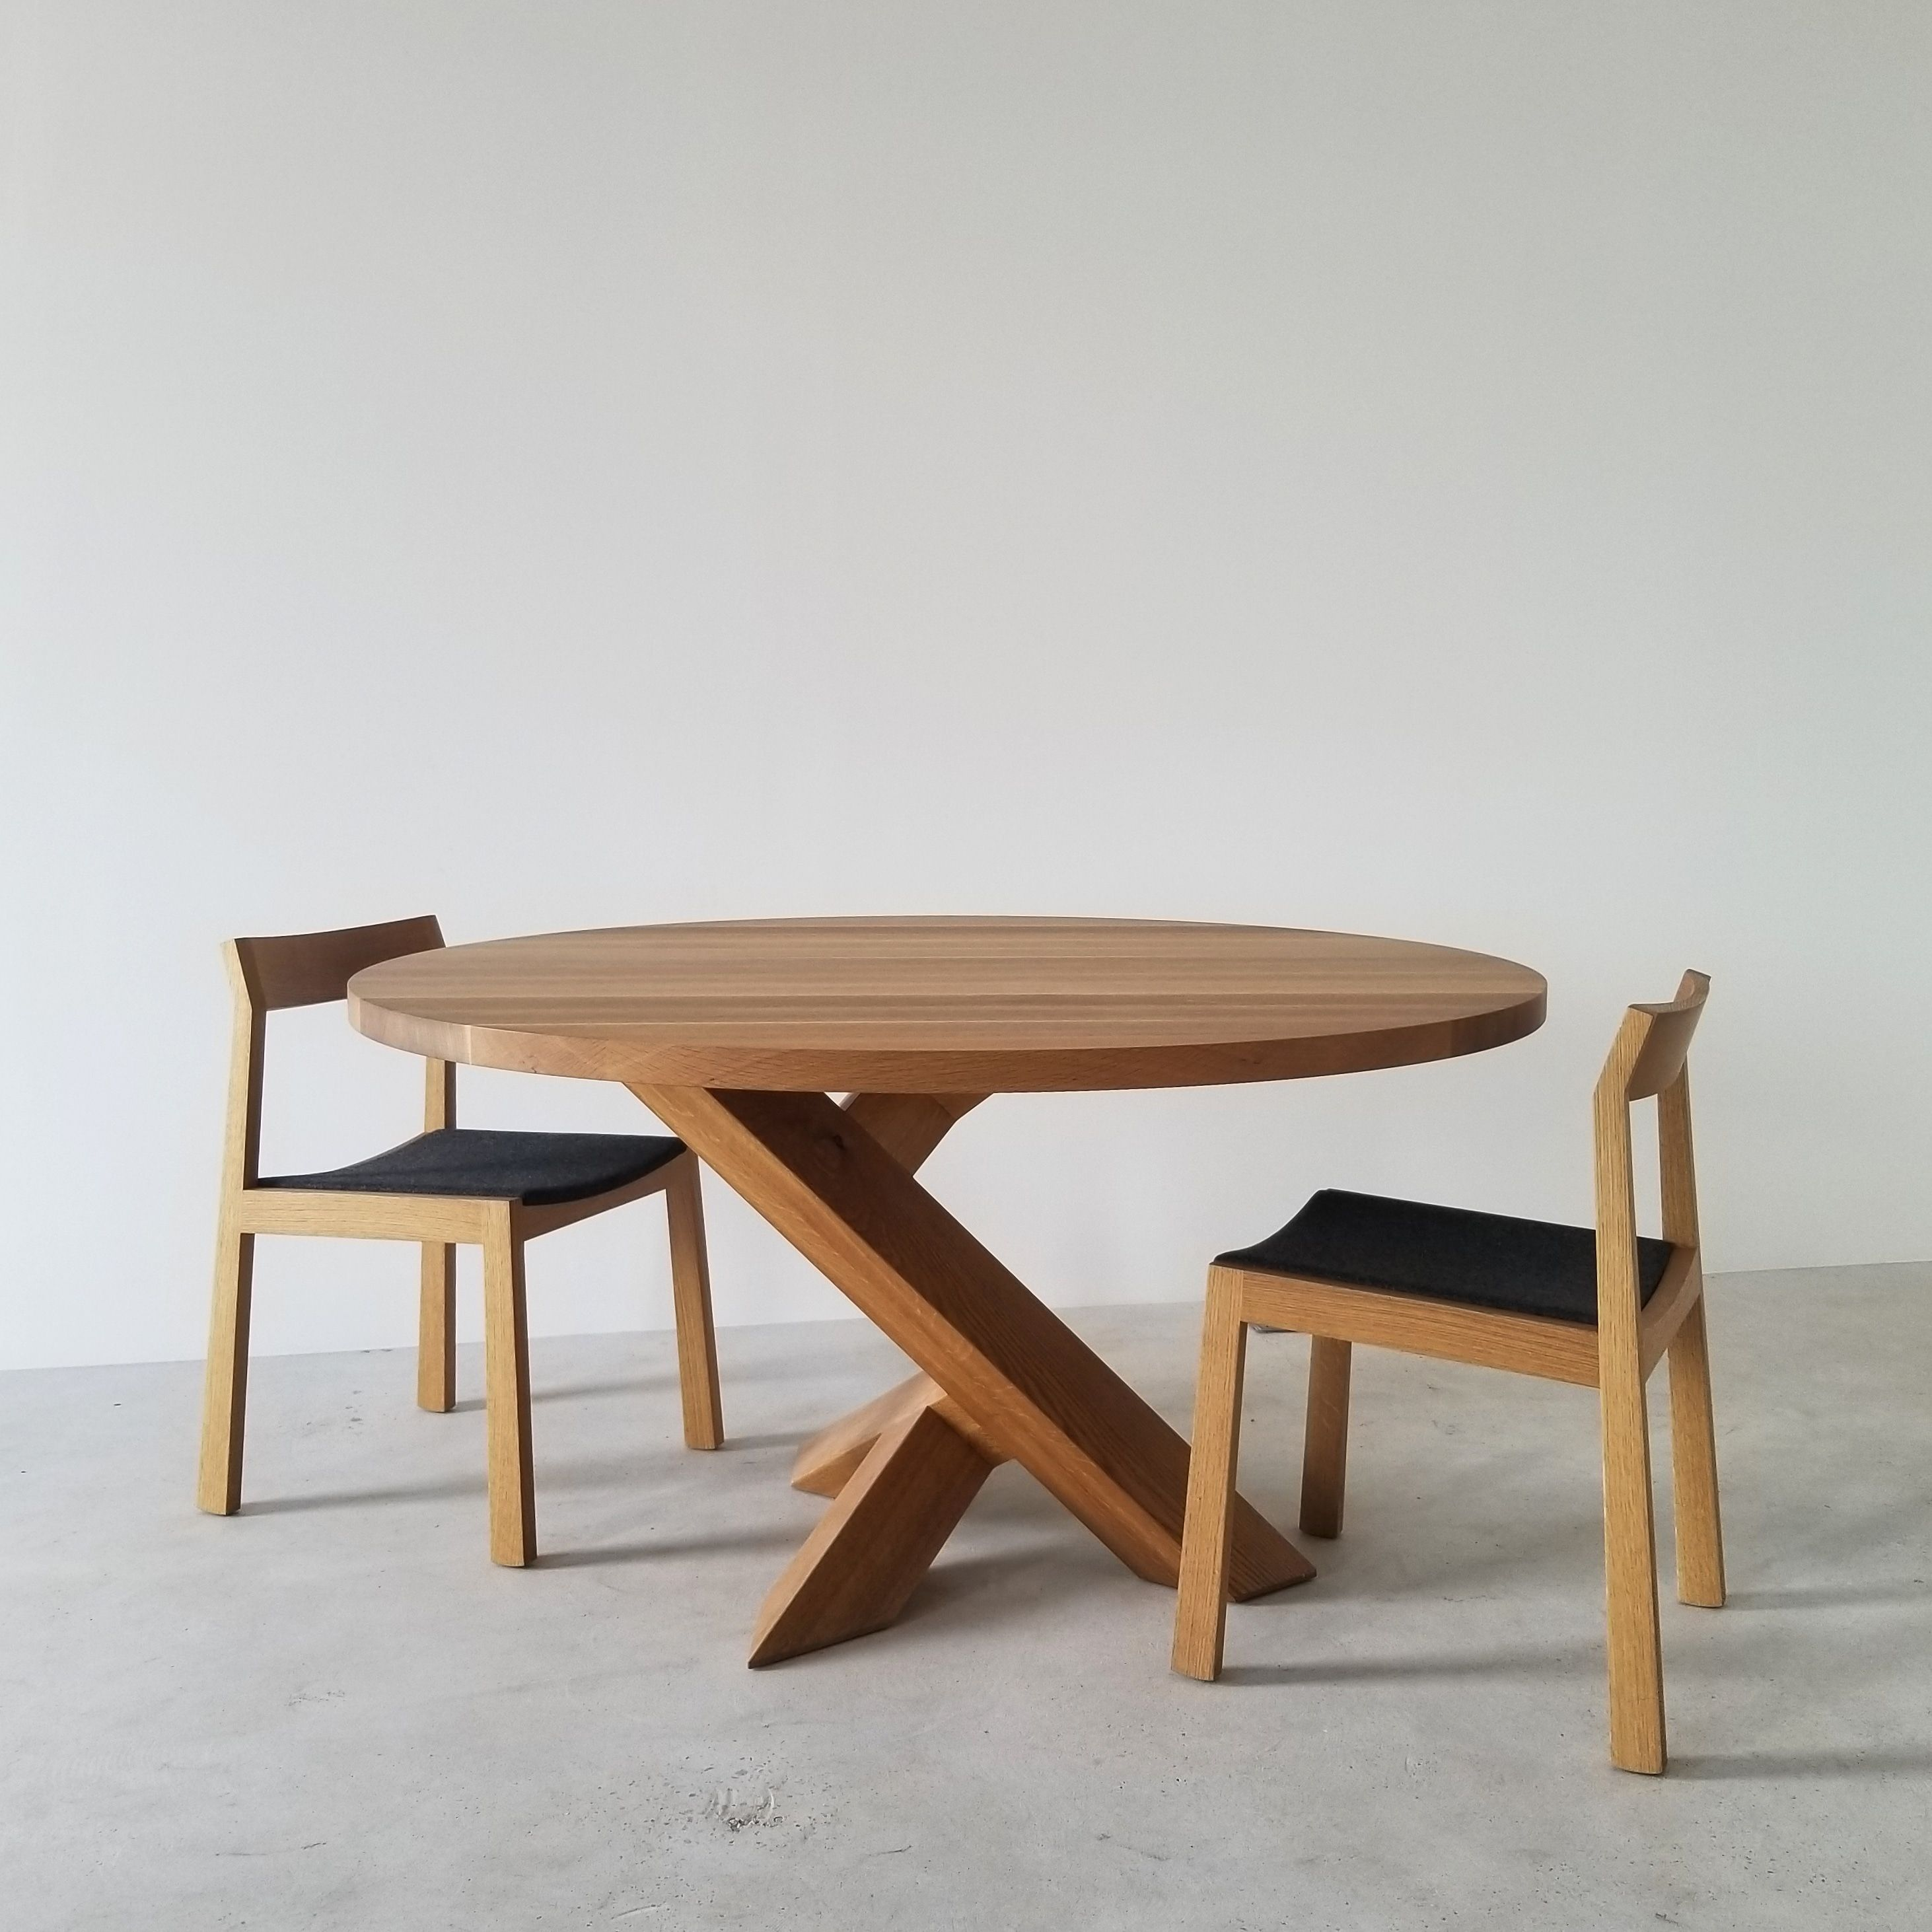 Round Iconoclast With Chairs In White Oak By Izm Izmdesign Www Izm Ca Dining Table Wood Table Design Dining Table Legs [ 2925 x 2925 Pixel ]